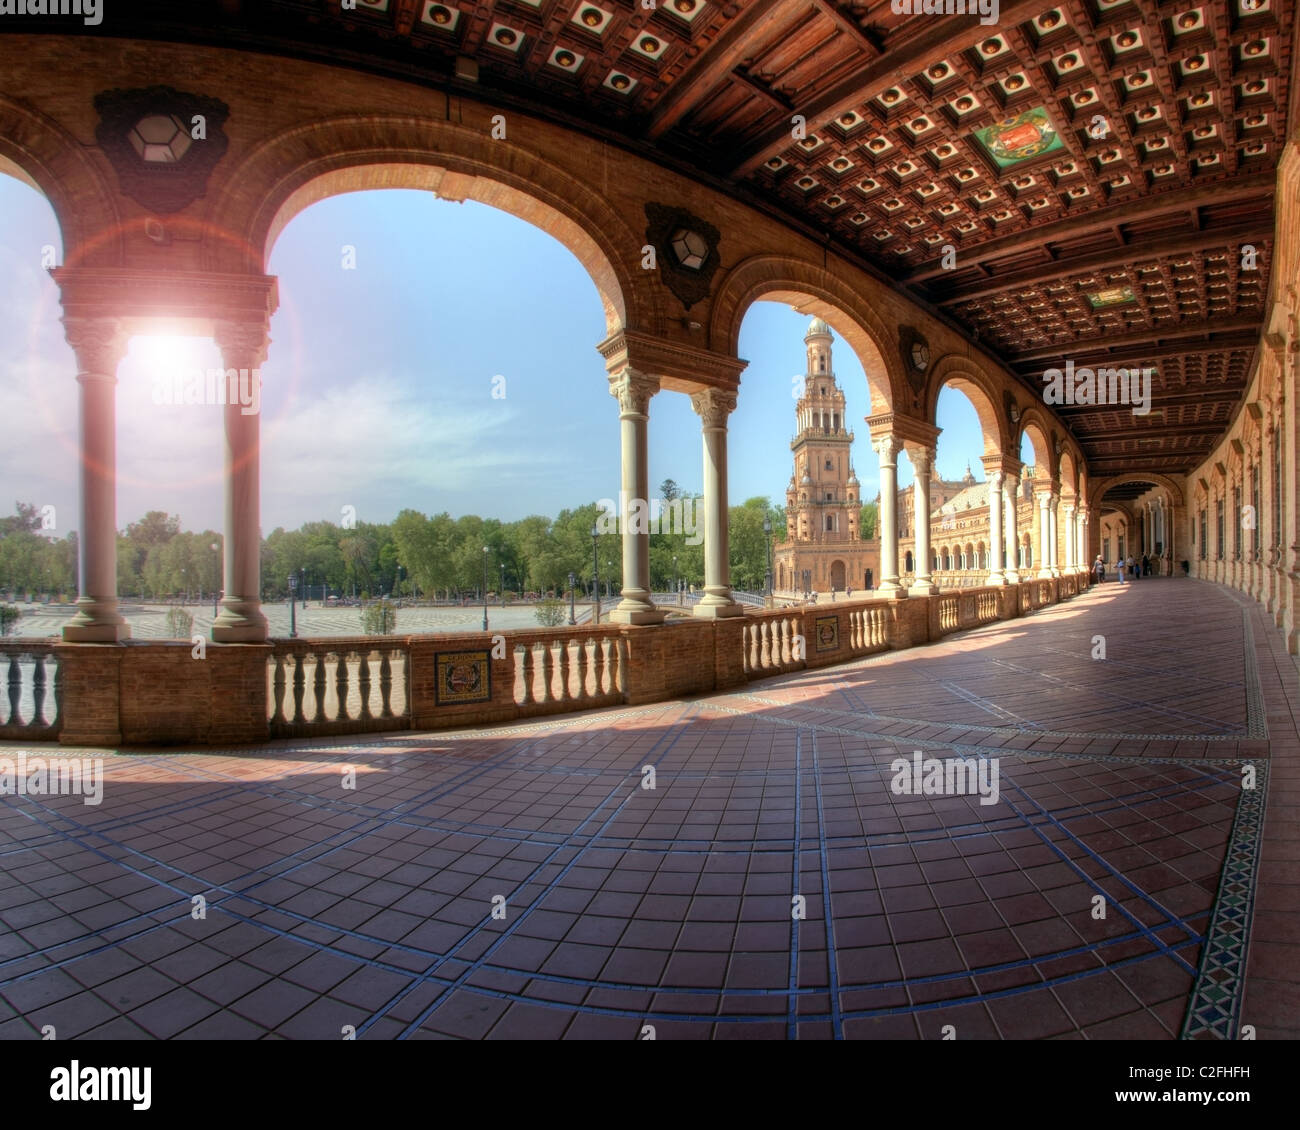 ES - Andalousie : Seville's célèbre Plaza de Espana Photo Stock